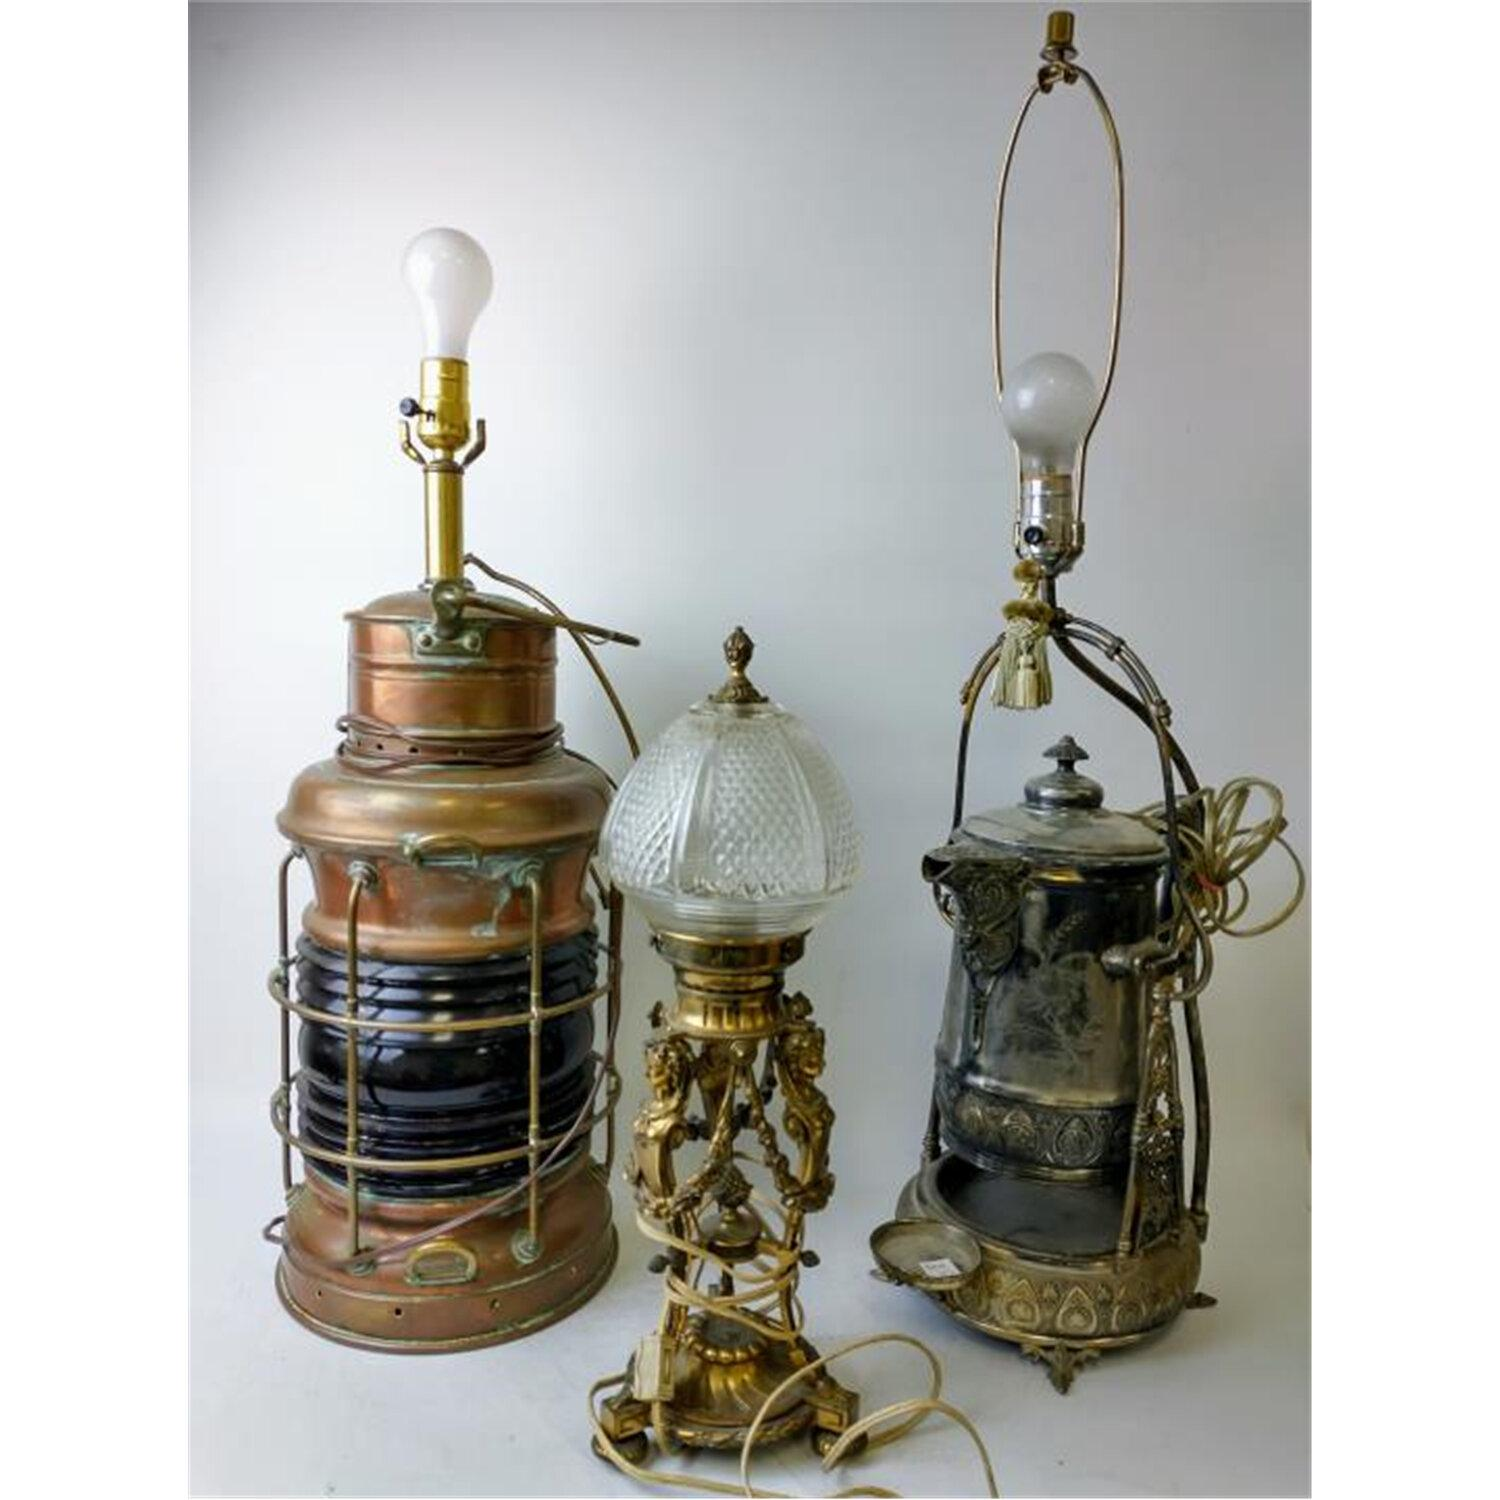 Lot of 3 Old Lamps